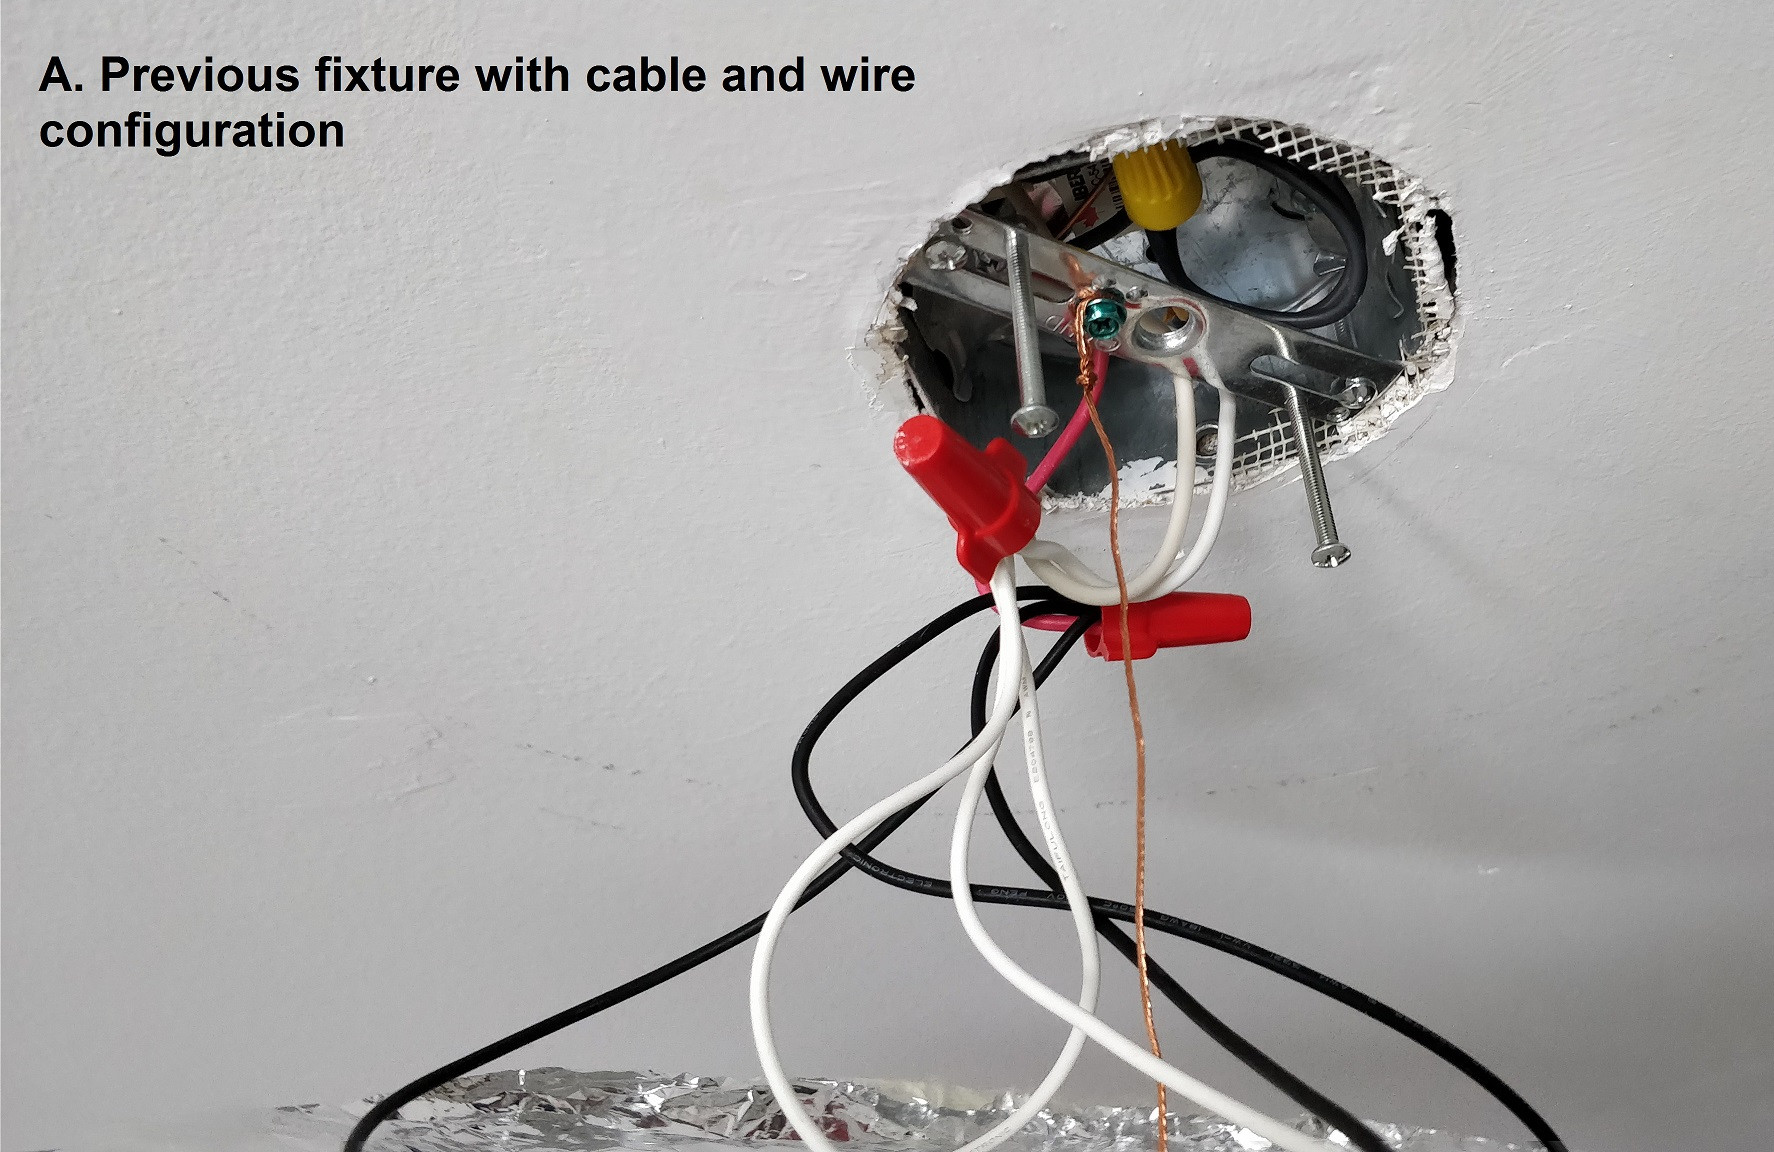 hight resolution of lacking the background the cable and wire configuration confuse me